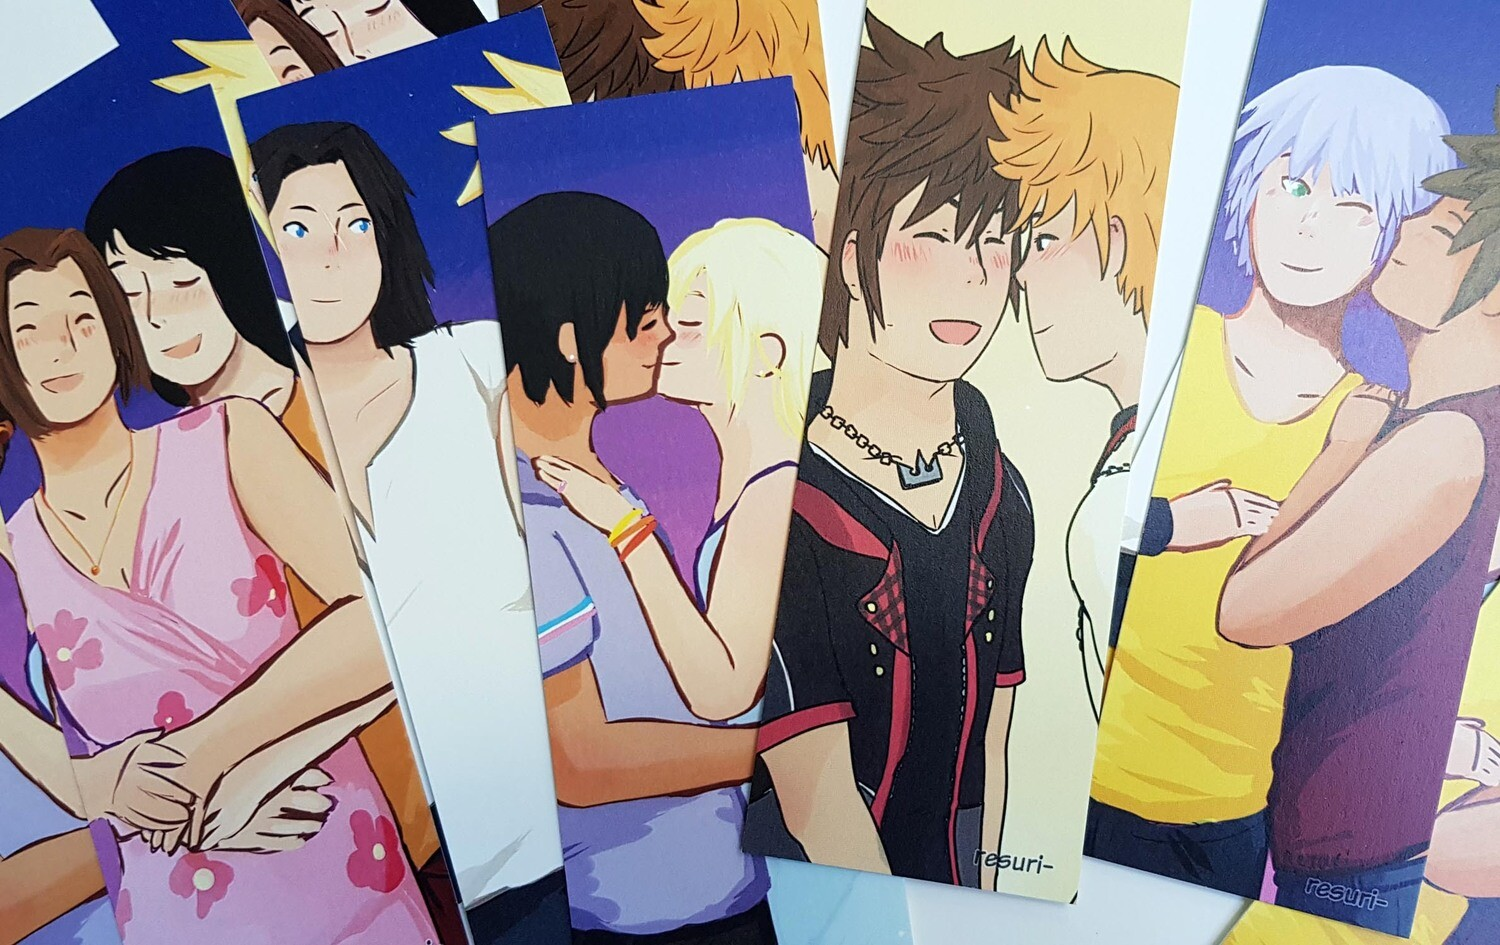 KH ships [Marque-page / Bookmark]